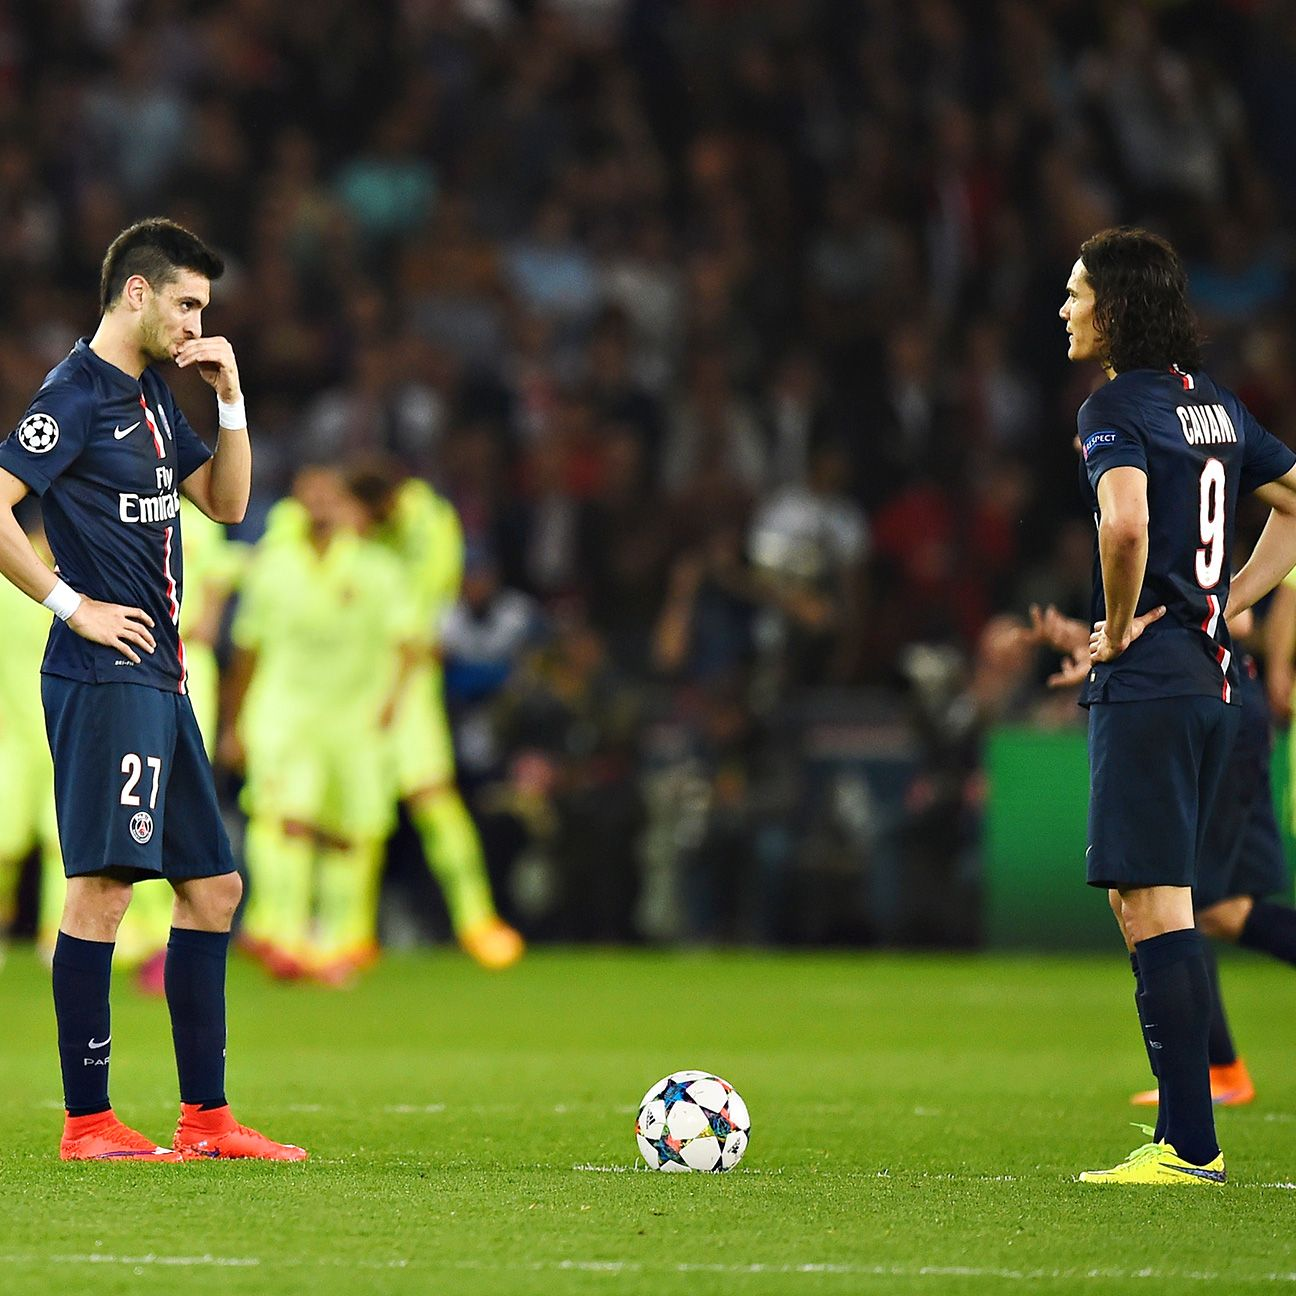 PSG's hopes of reaching a first Champions League semifinal in 20 years now look a slim possibility.